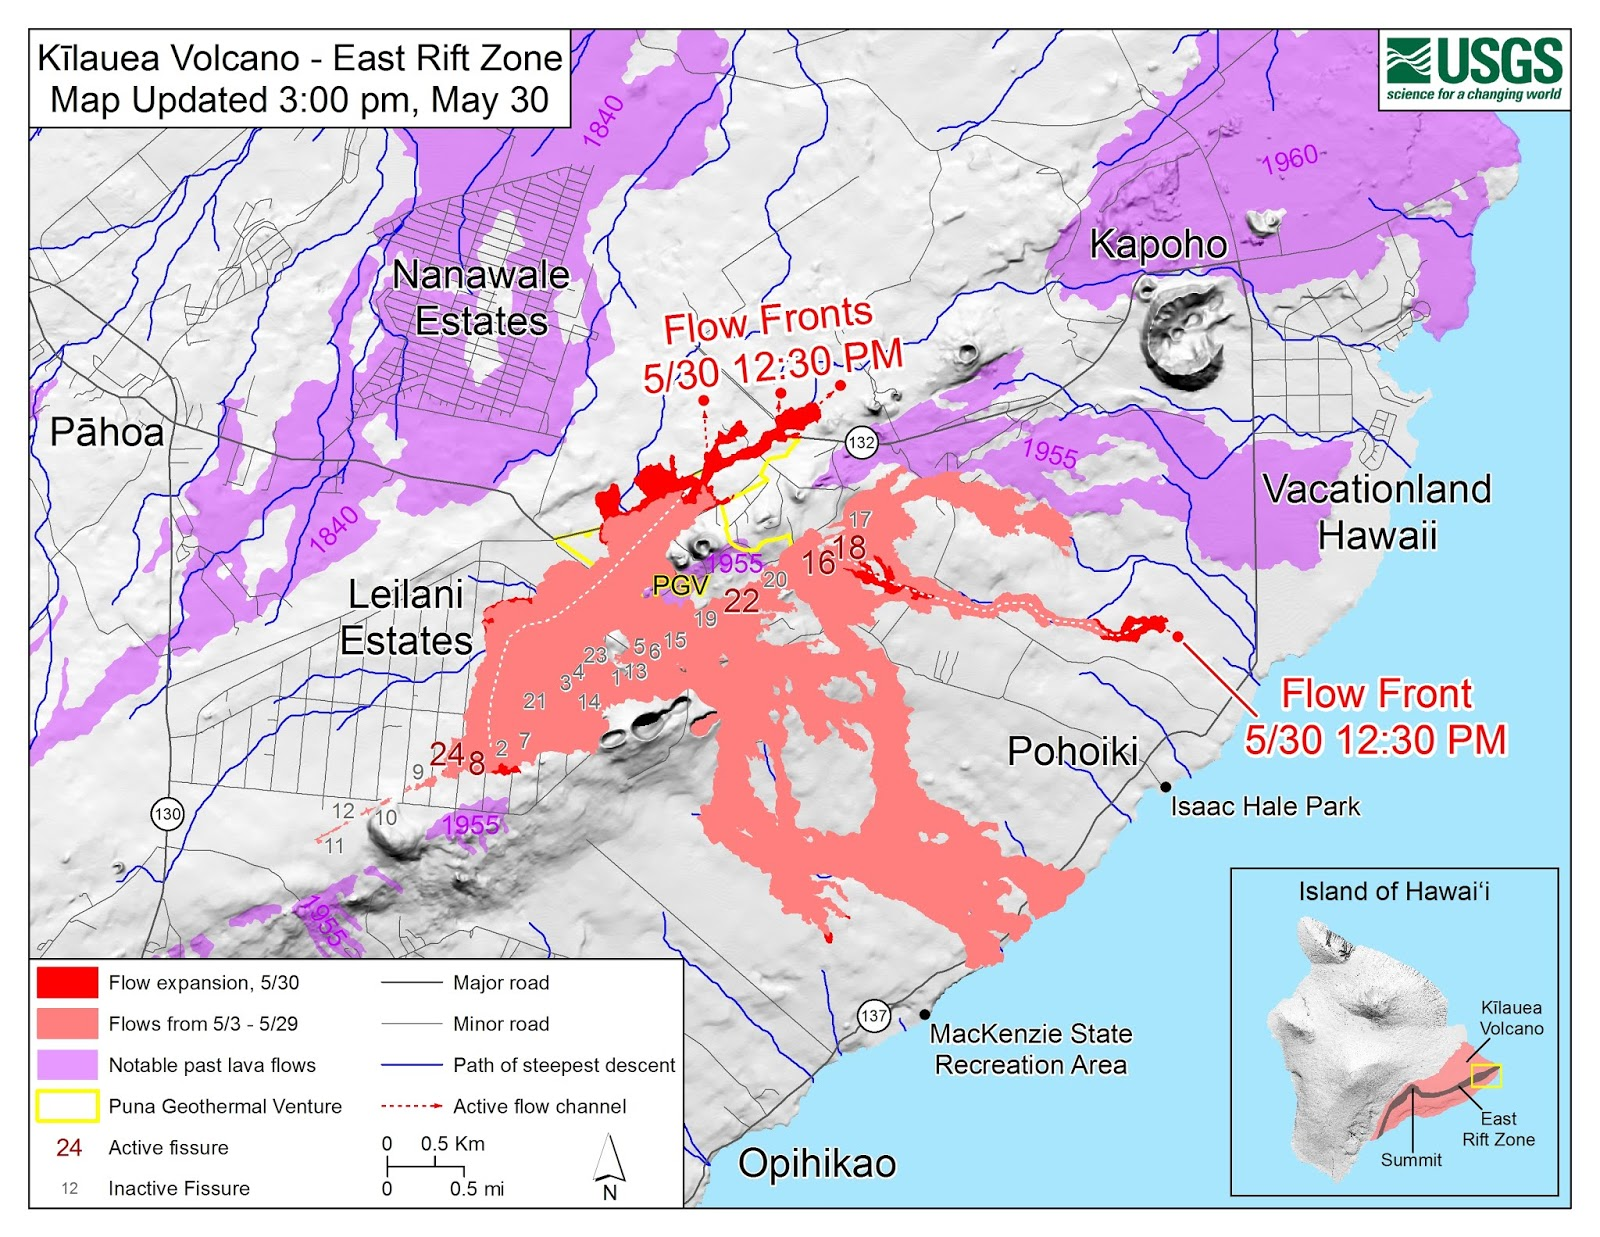 the usgs flow map and the relatively low level seismicity of the last 24 hours or so on the lerz lower east rift zone